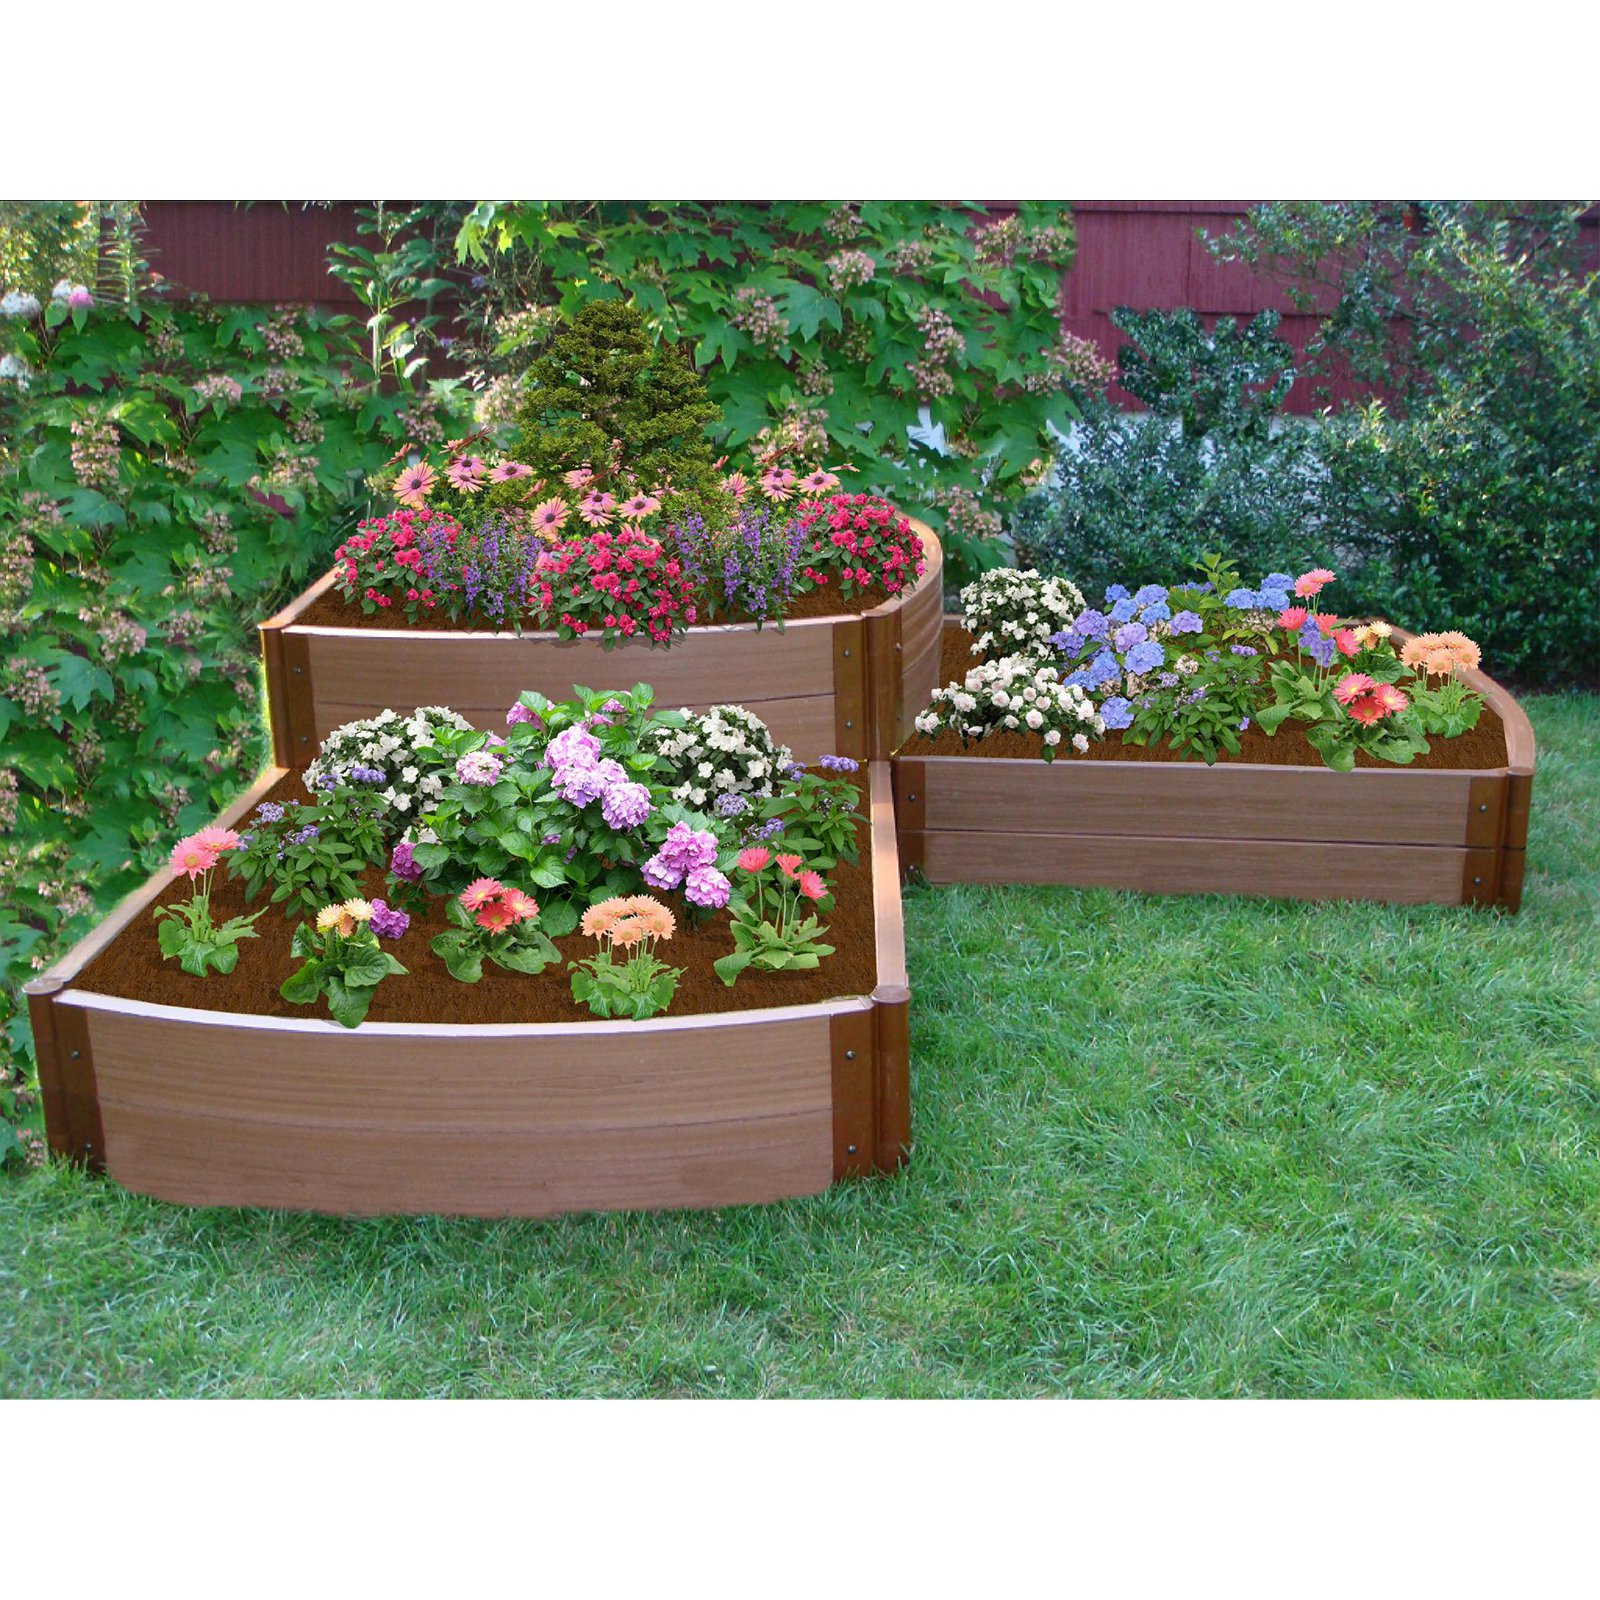 Frame It All 2-inch Series Composite Split Waterfall Raised Garden Bed Kit- 98in. x 98in. x 22in.